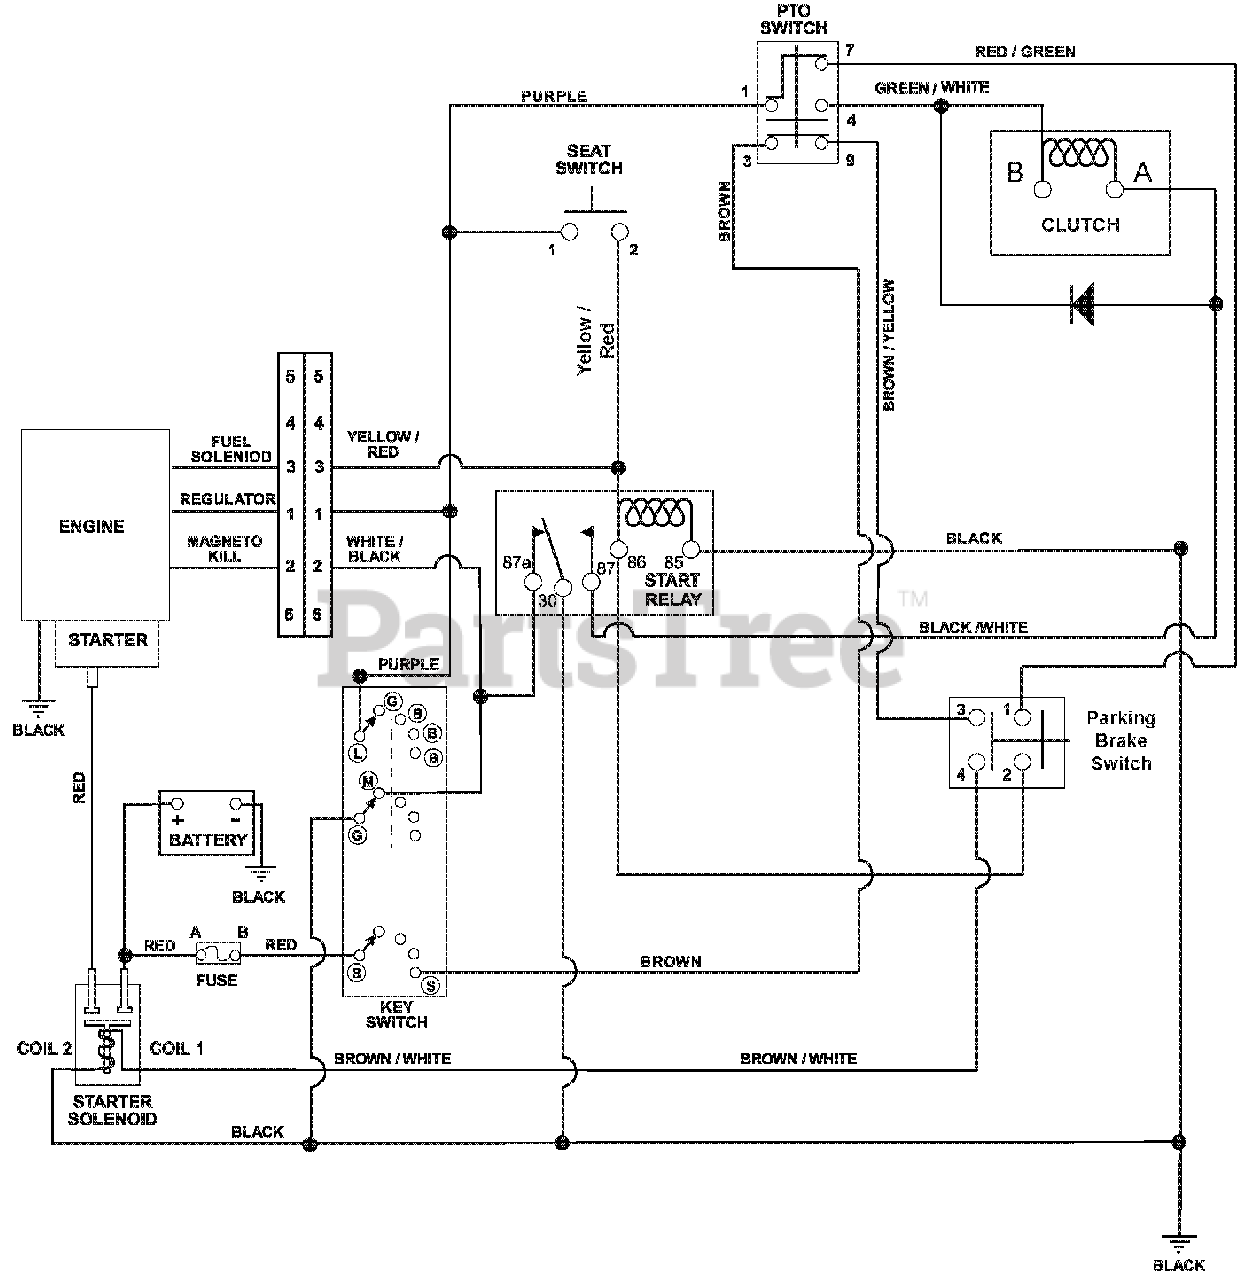 Briggs And Stratton Wiring Diagram 16 Hp - Wiring Diagram